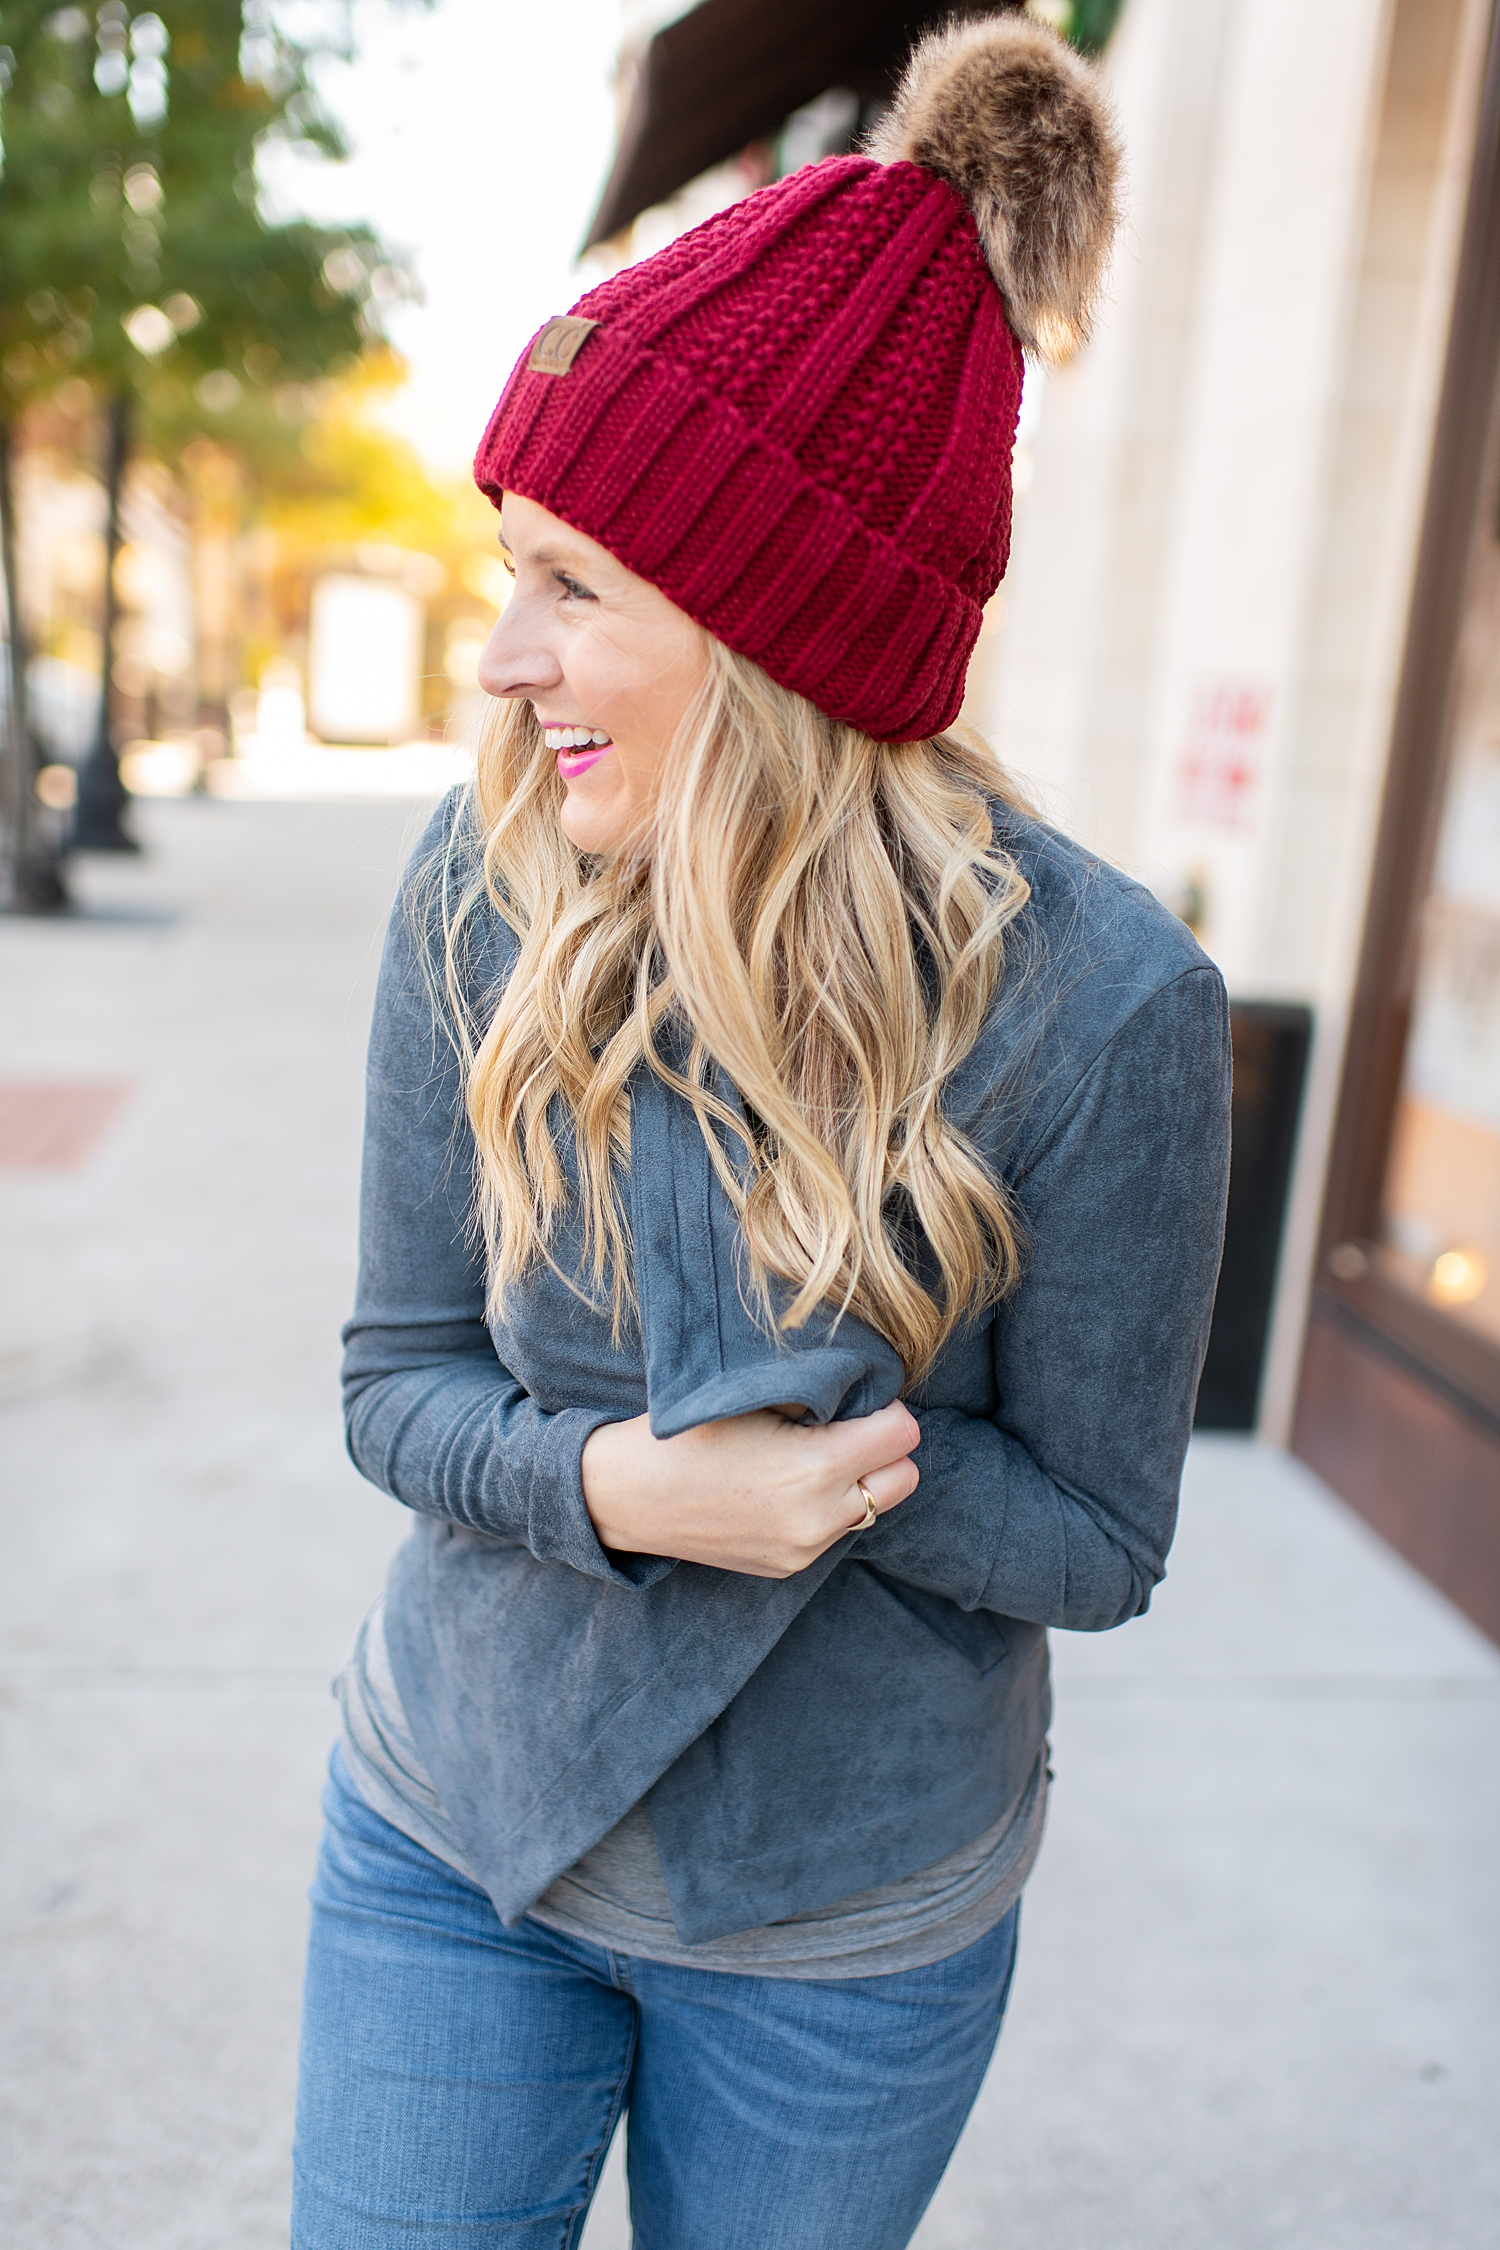 Fancy Ashley x Social Threads collection featured by top Houston fashion blogger, Fancy Ashley: image of a woman wearing a Social Threads faux suede jacket, Social Threads festive graphic tee, Social Threads skinny jeans, Social Threads Pom Paom Hat and Golden Goose sneakers